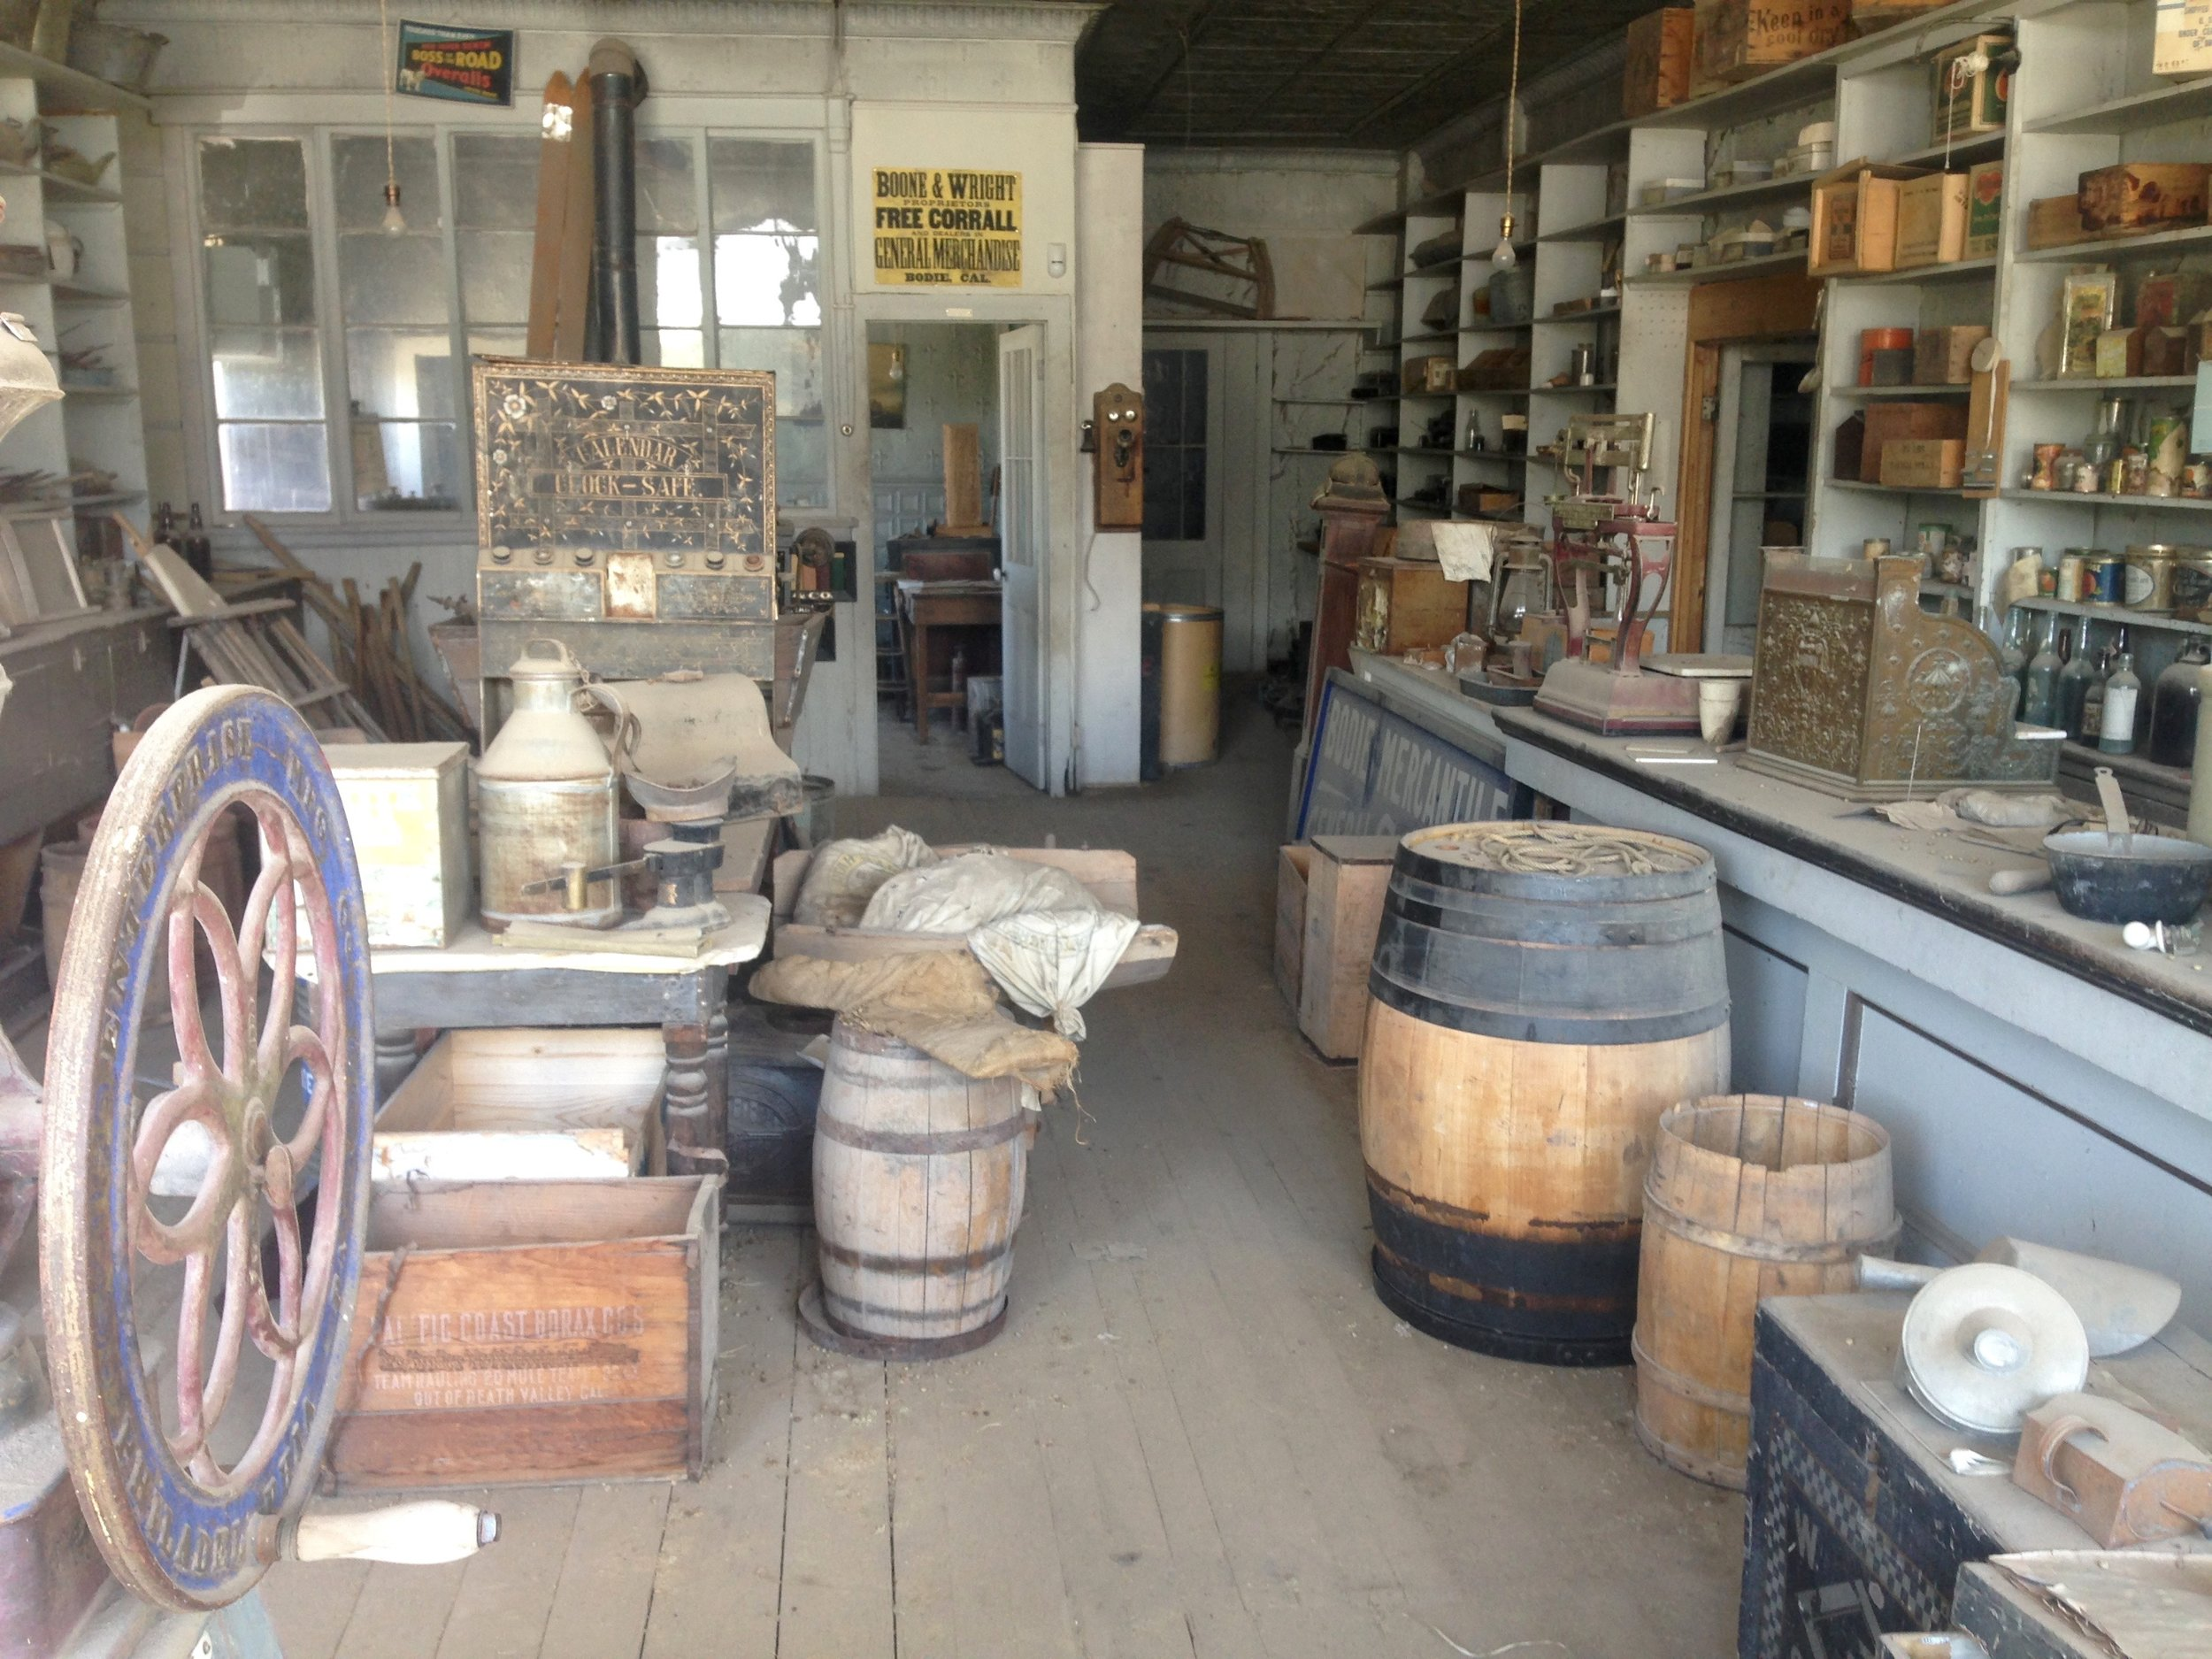 Boone Store & Warehouse -General store with products from that era